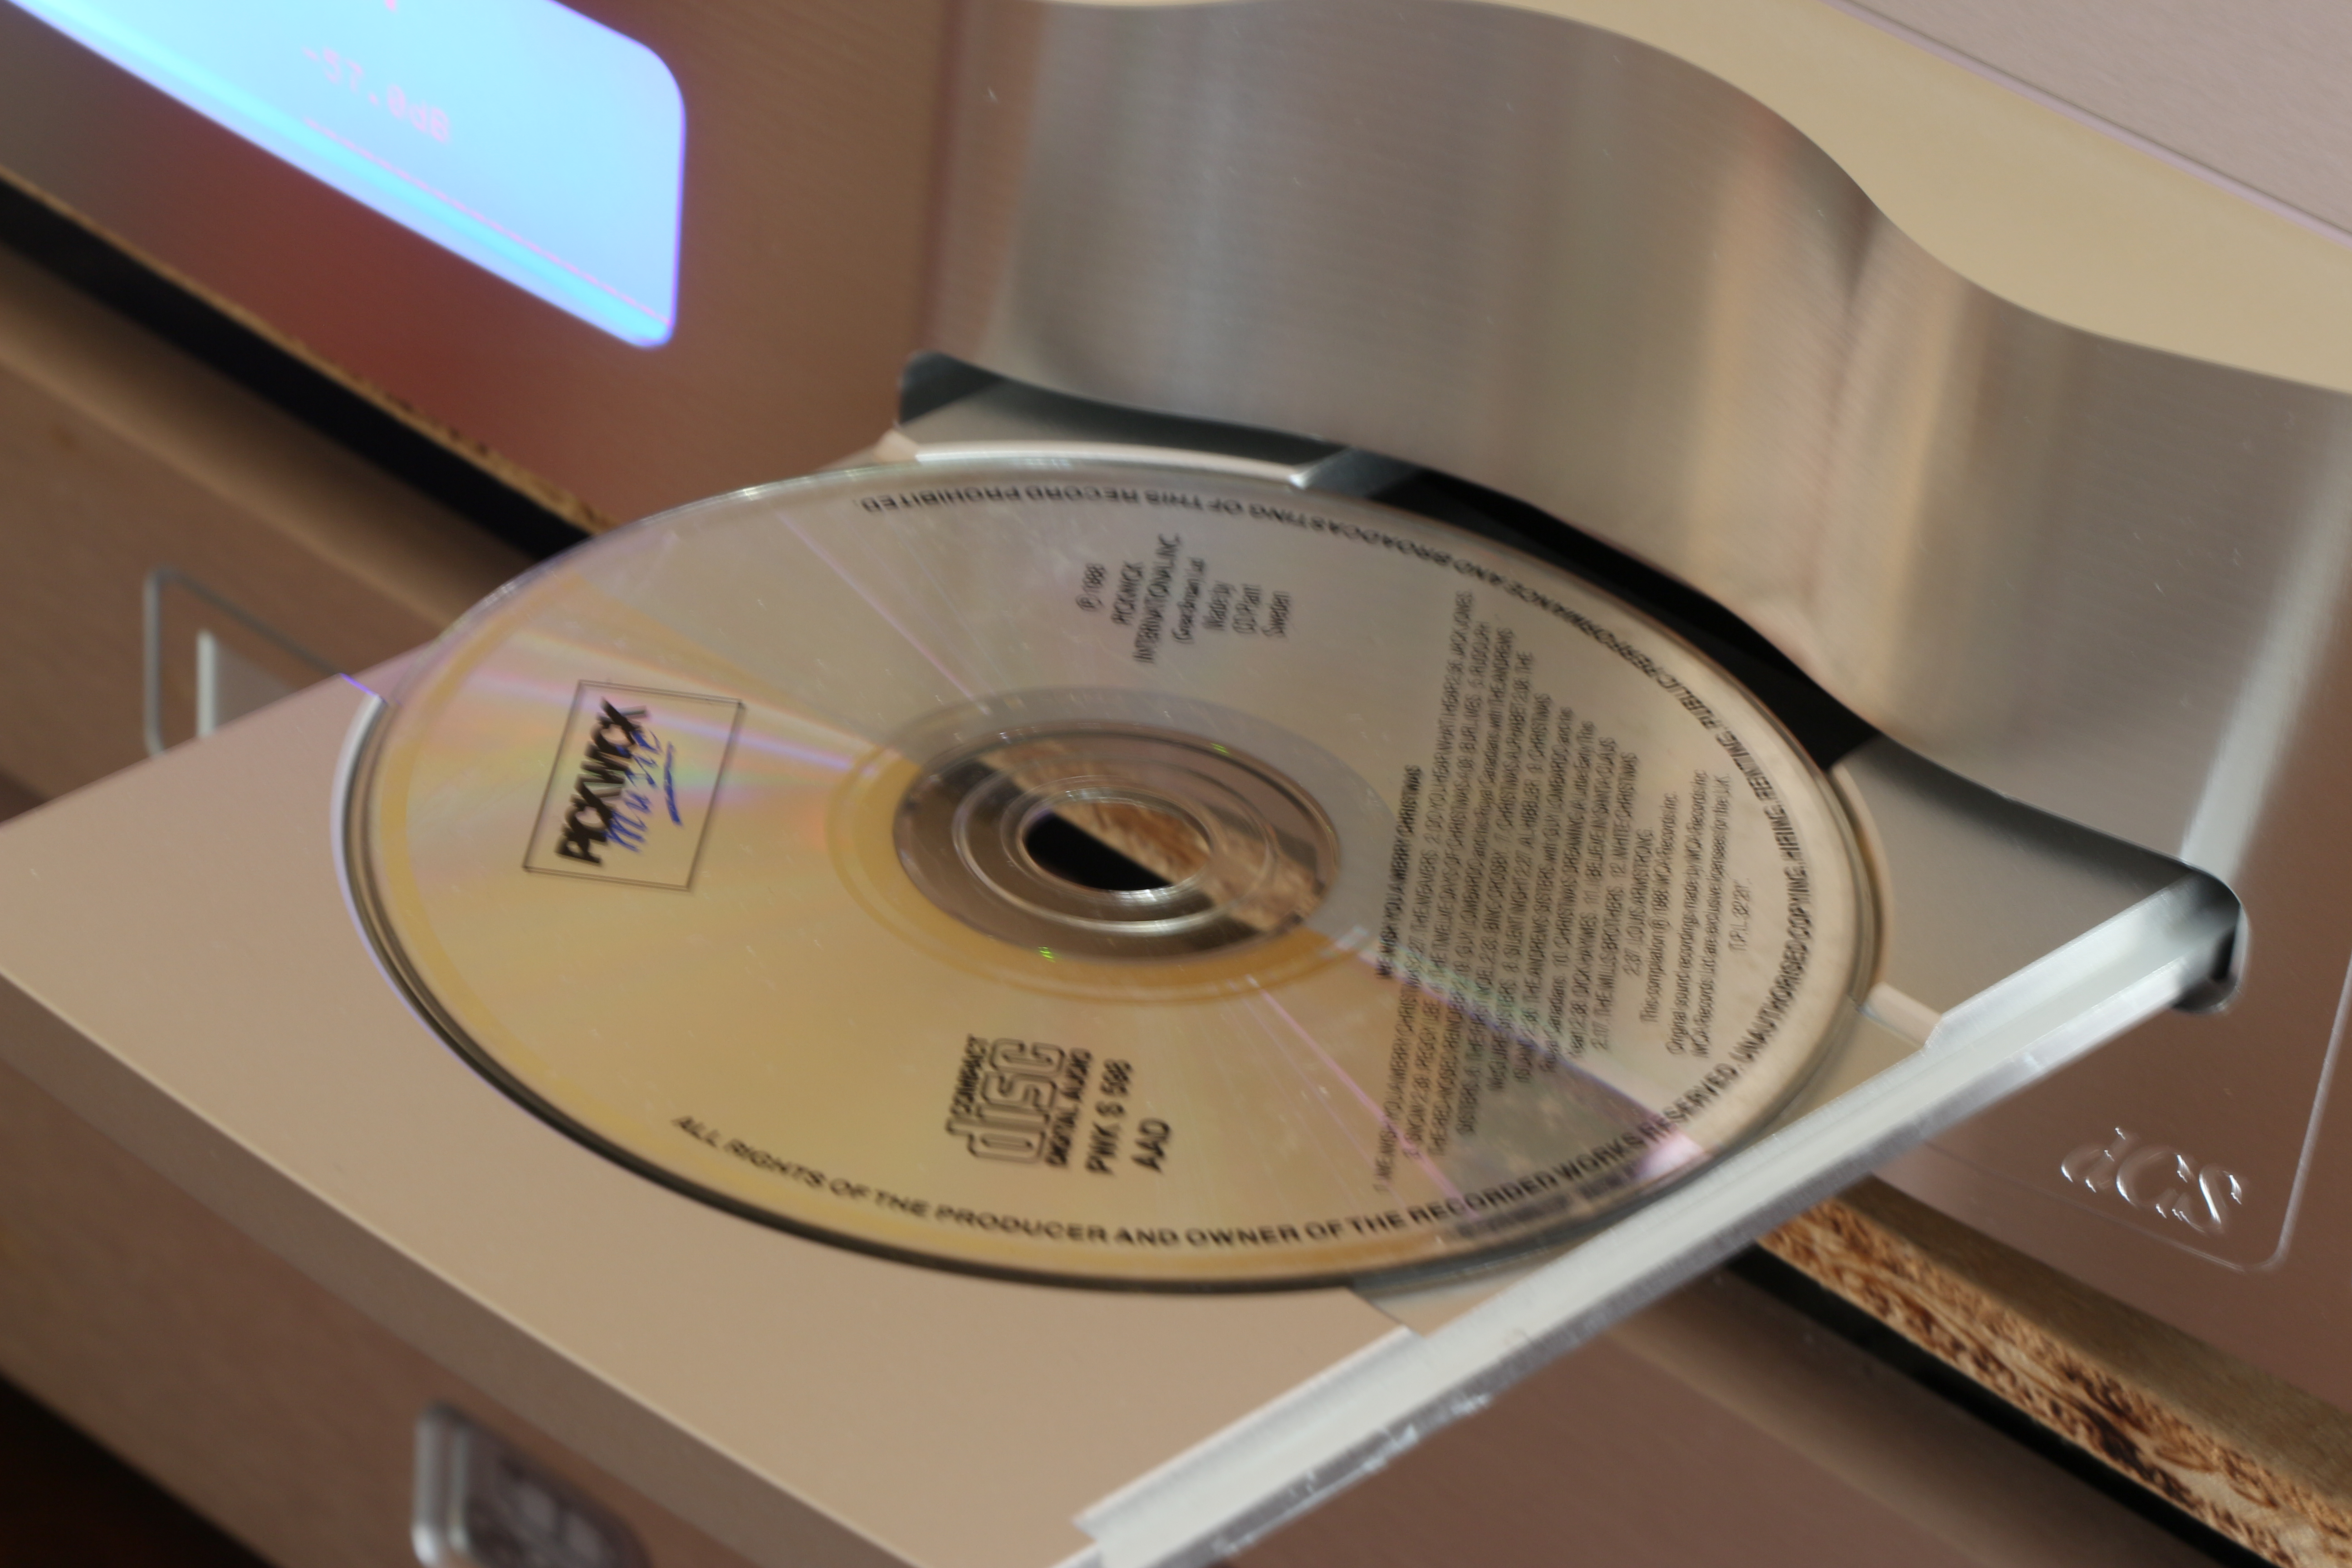 The CD drawer is made from a solid piece of aluminium.